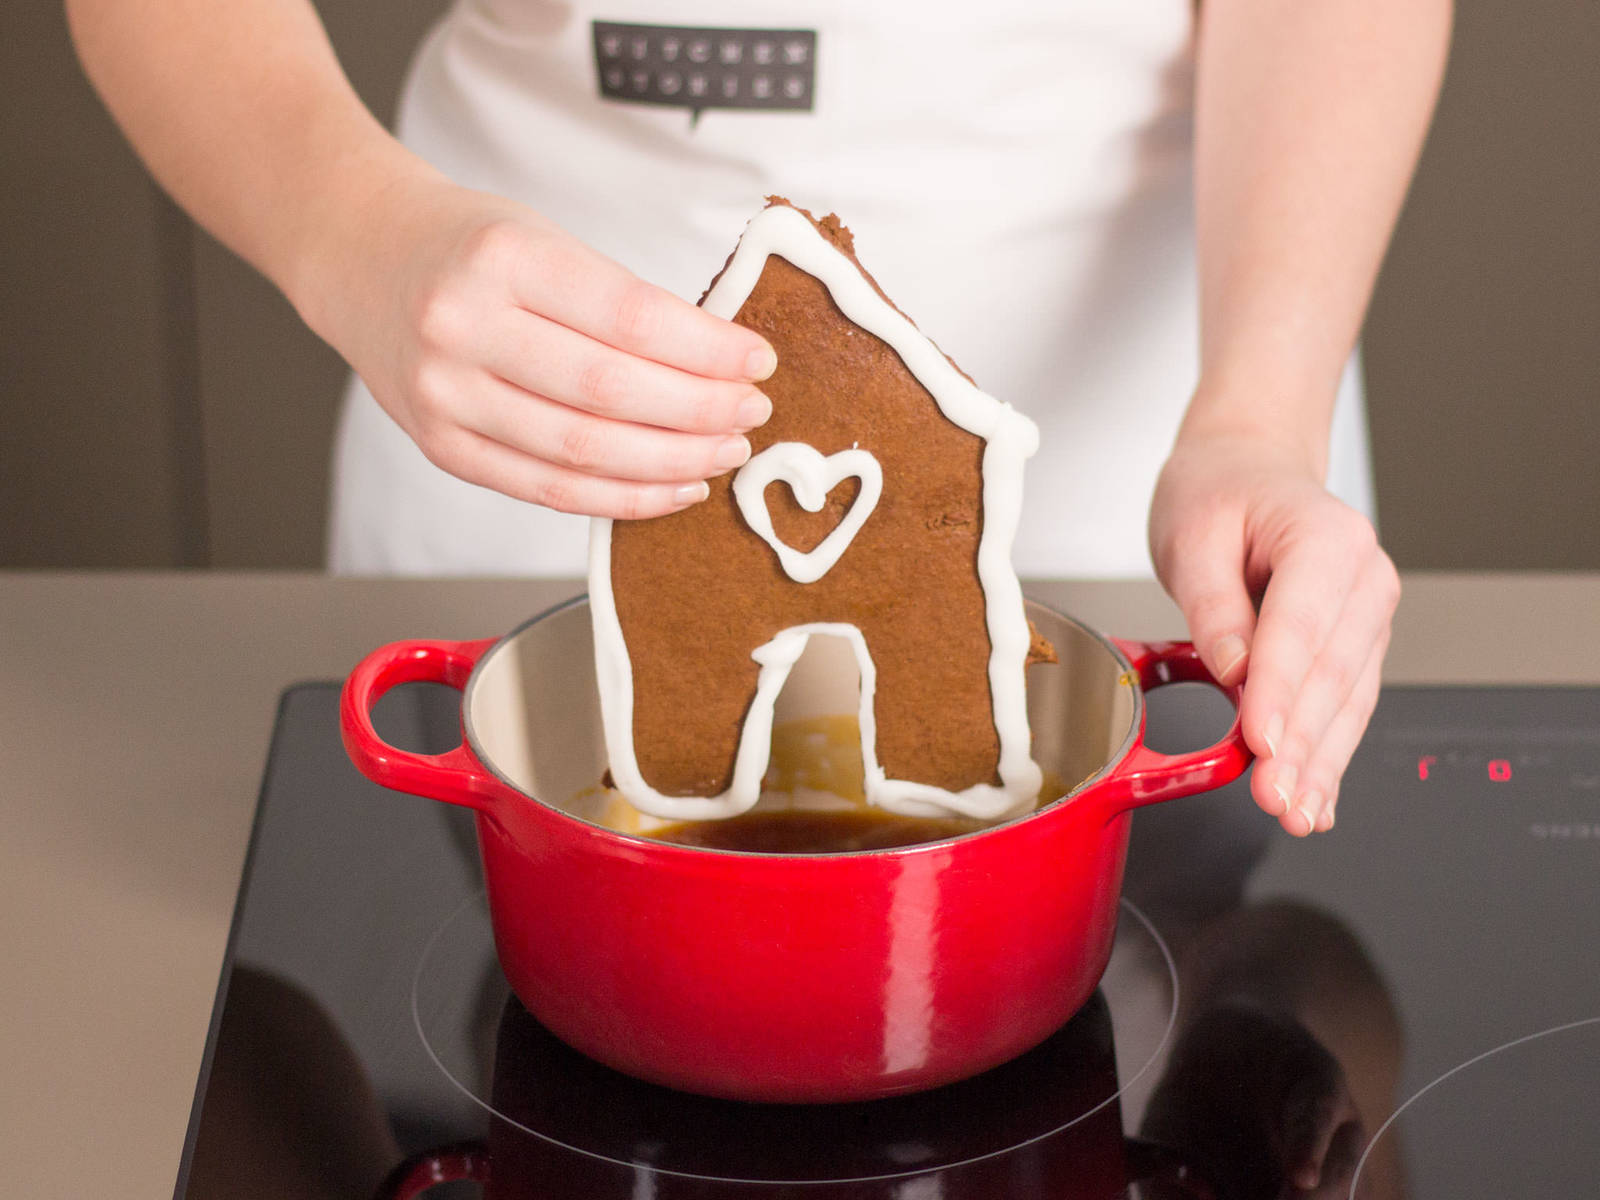 Melt sugar and a little water in a small saucepan and cook over medium heat until a dark caramel forms. Carefully dip bottom of house pieces in caramel and stick to a serving plate. Use caramel to stick together other inner edges and to attach Christmas trees and gingerbread men.